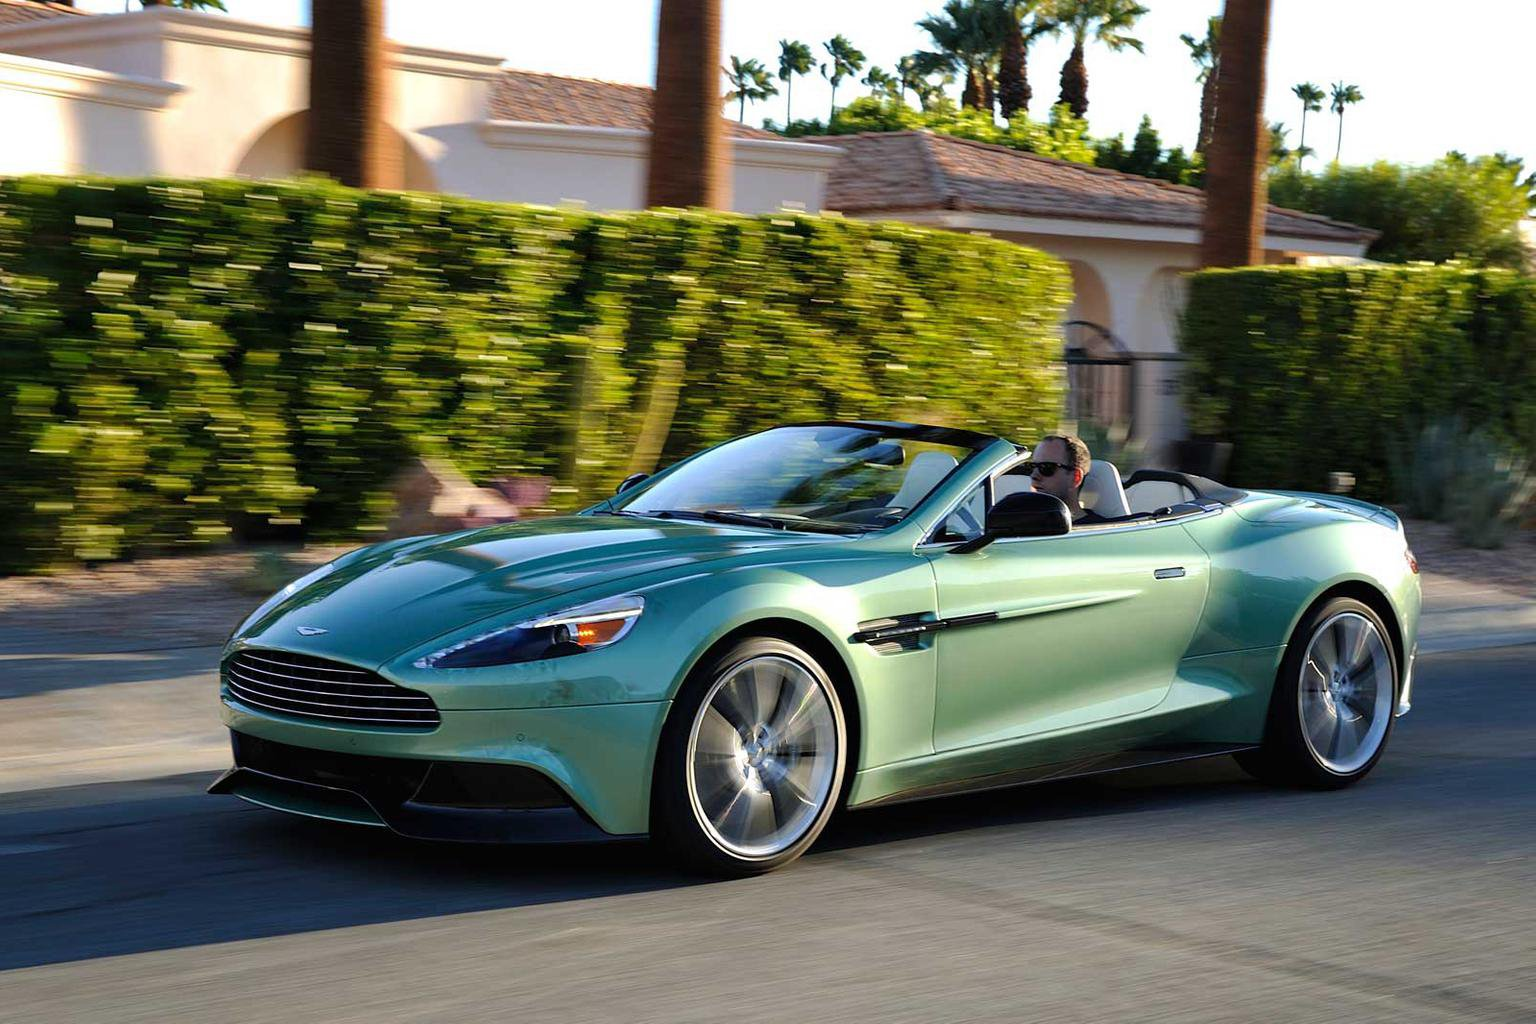 2014 aston martin vanquish volante review | what car?